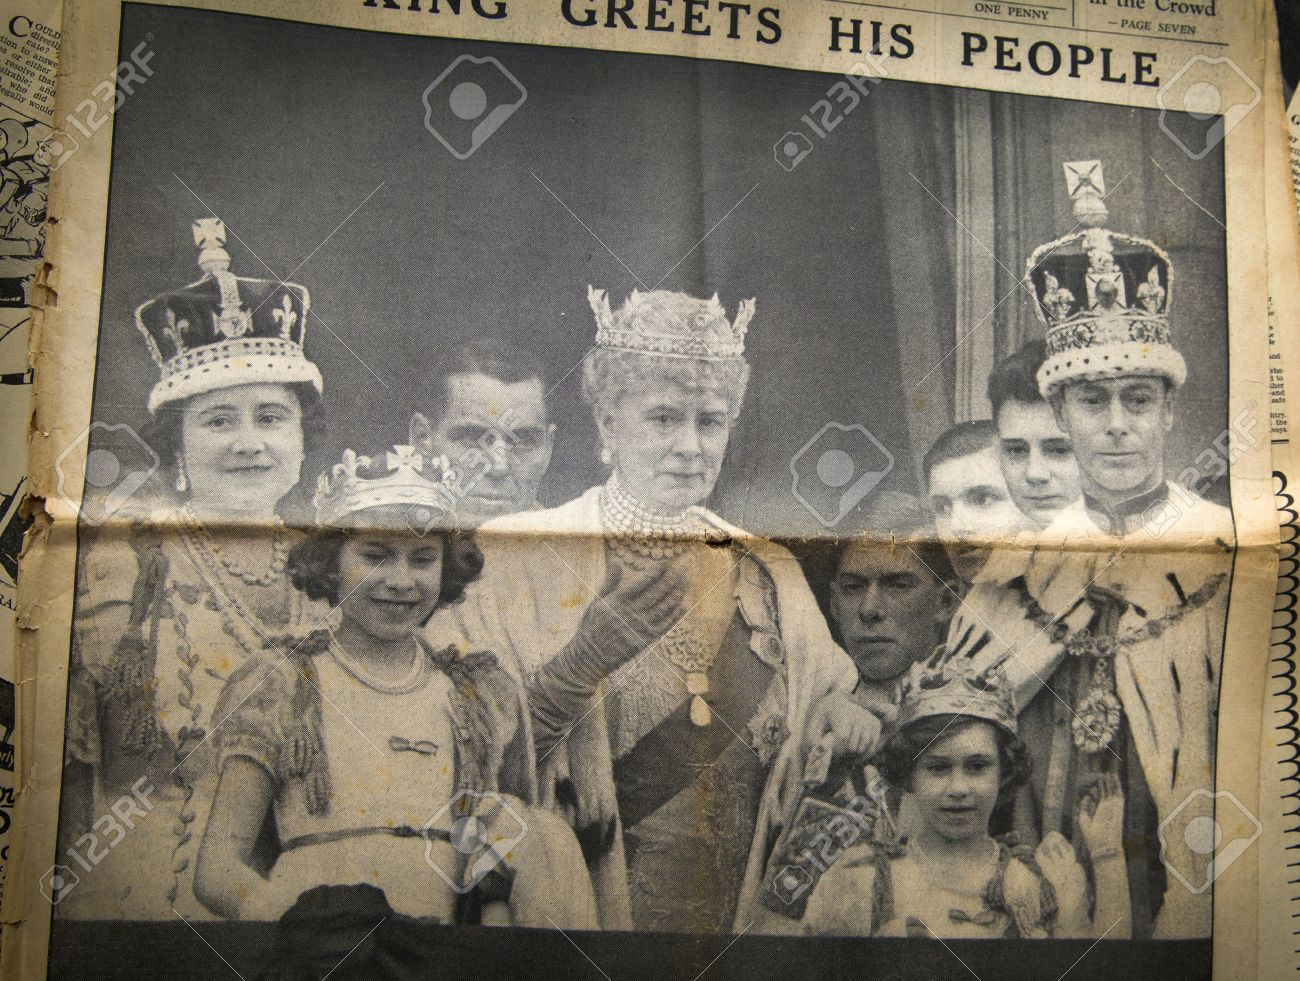 london uk 16 2014 king cheering his peopel royal family london uk 16 2014 king cheering his peopel royal family on